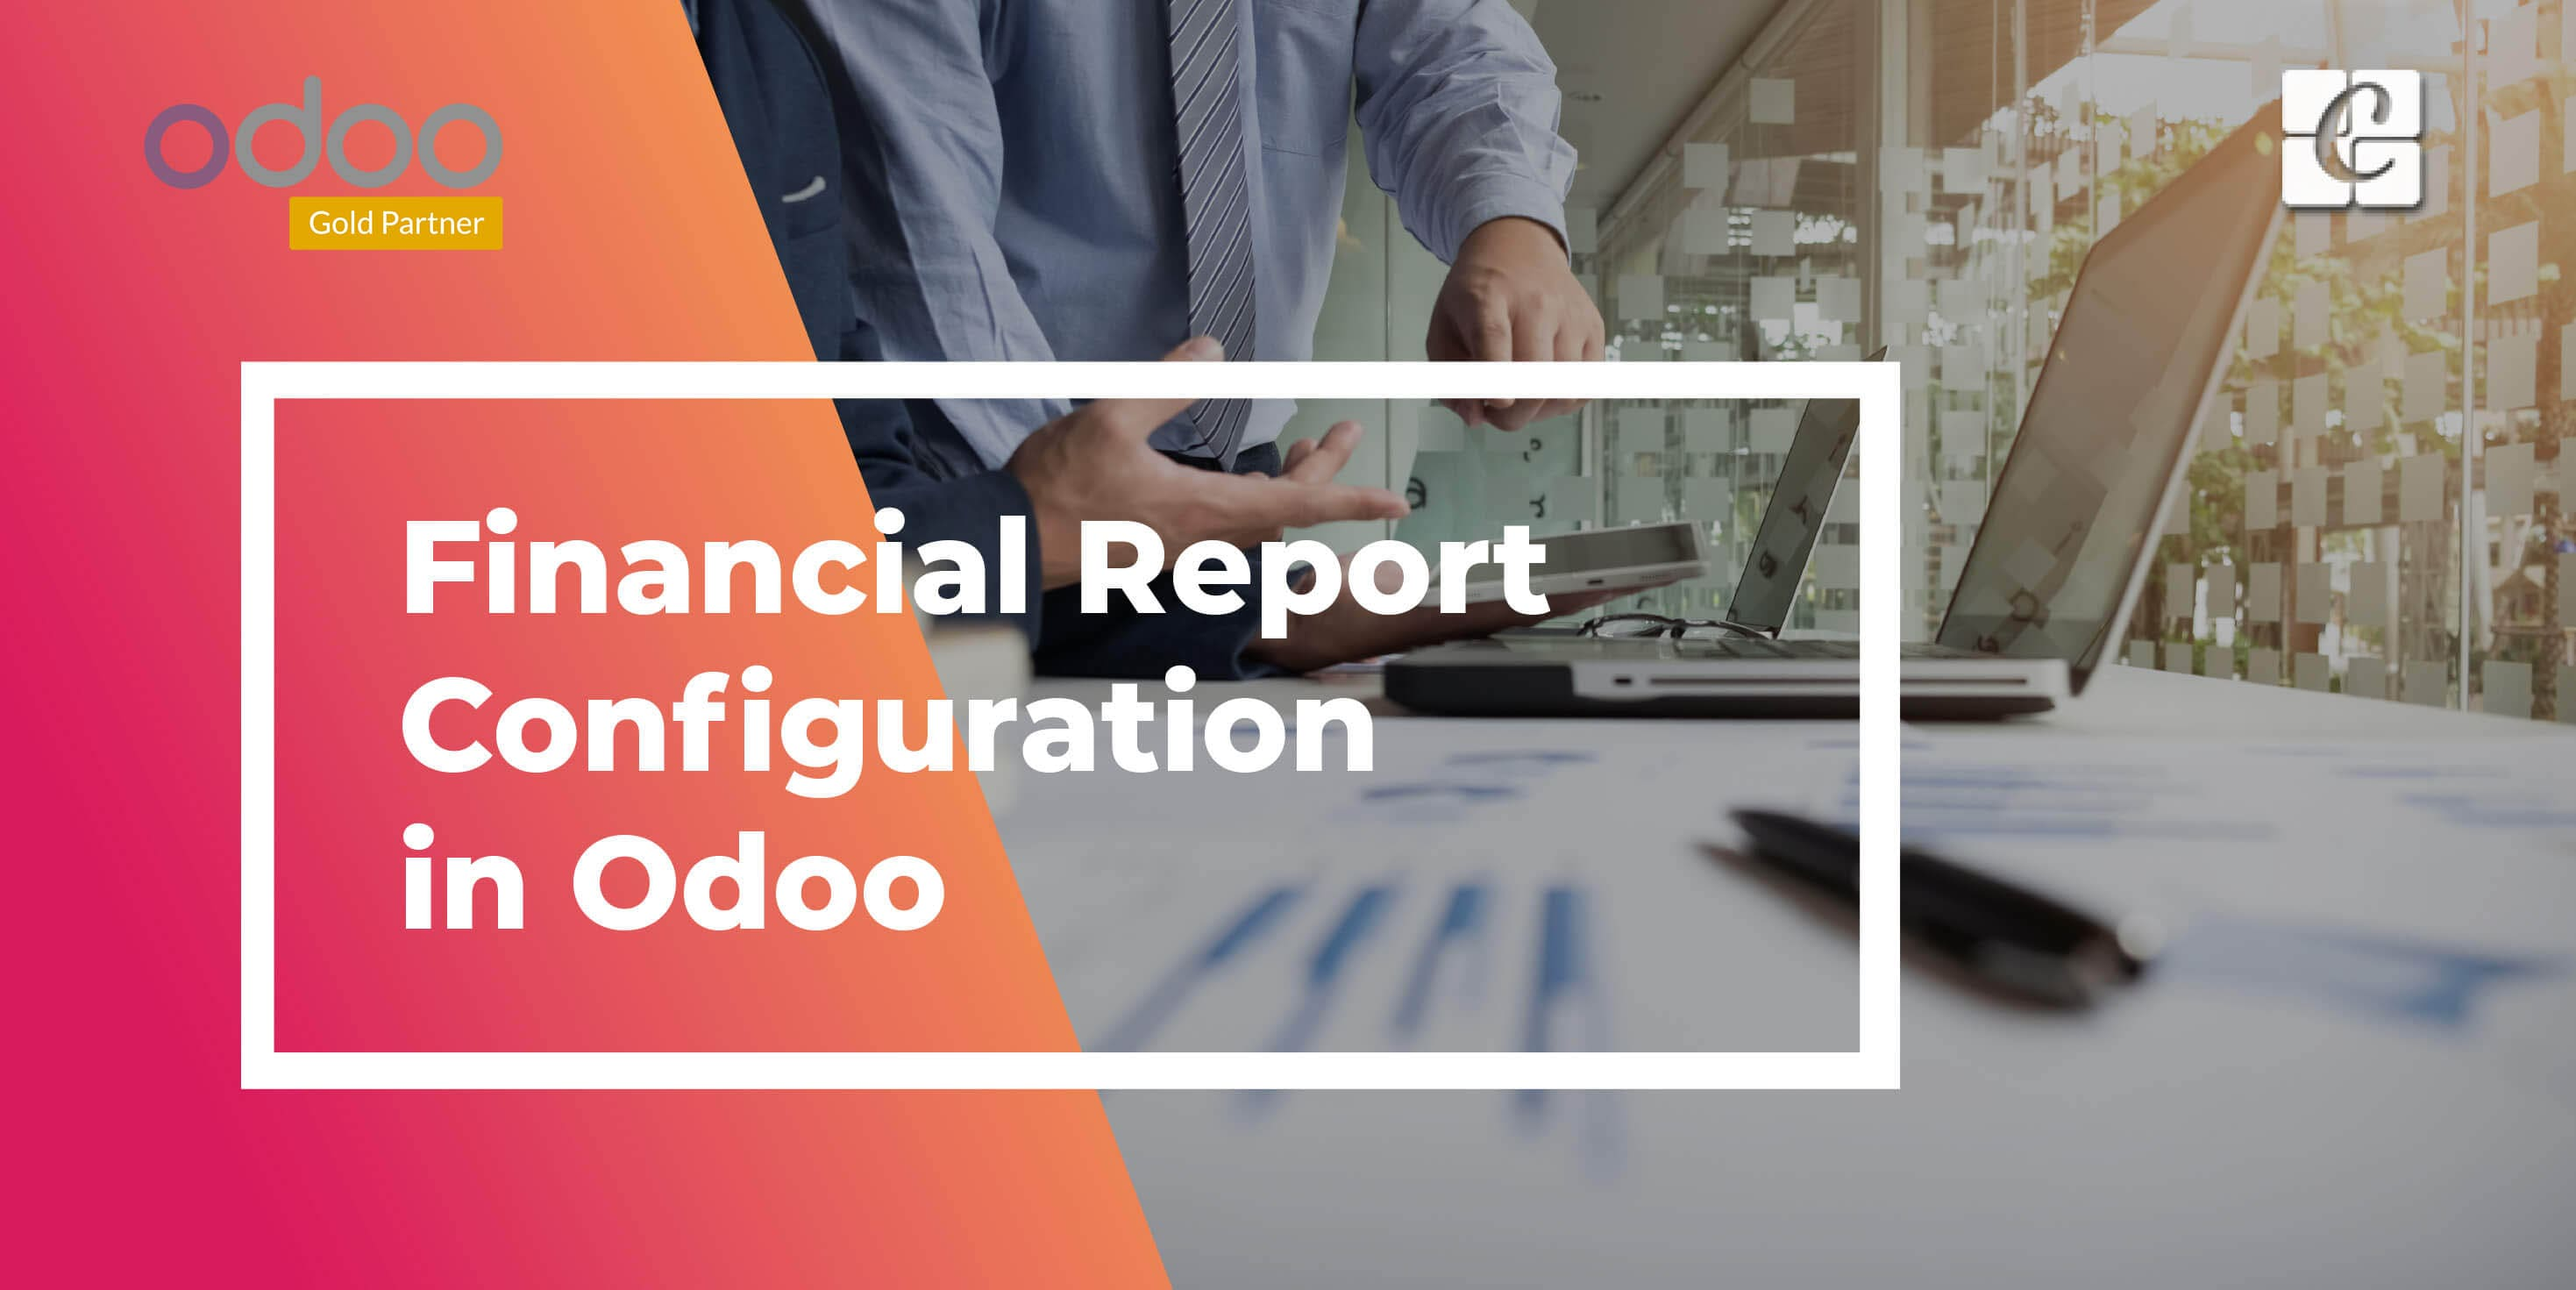 financial-report-configuration-in-odoo.jpg